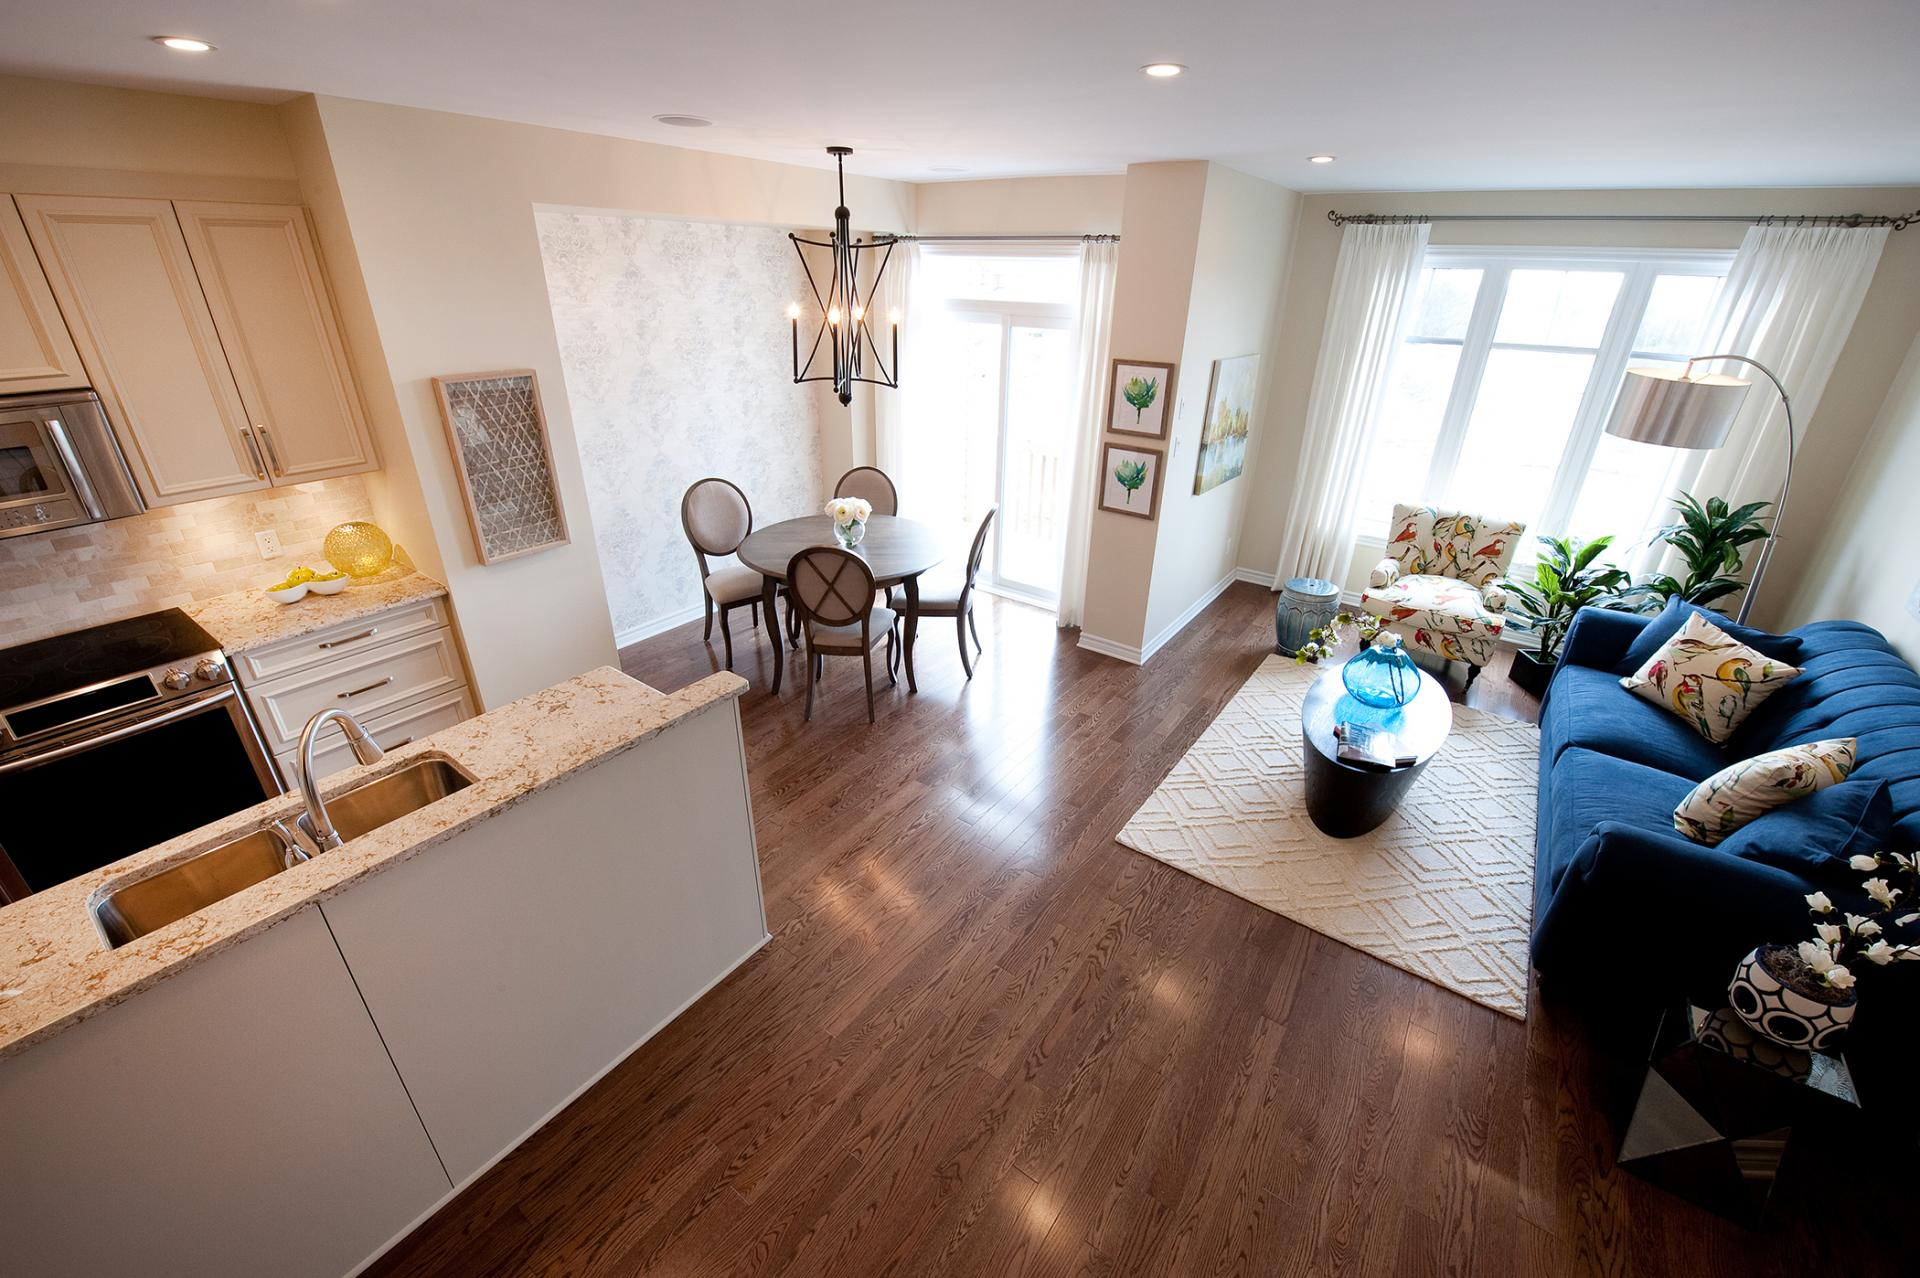 Eton 3 bedroom unit new townhome ottawa new townhomes for sale tamarack gallery image malvernweather Images